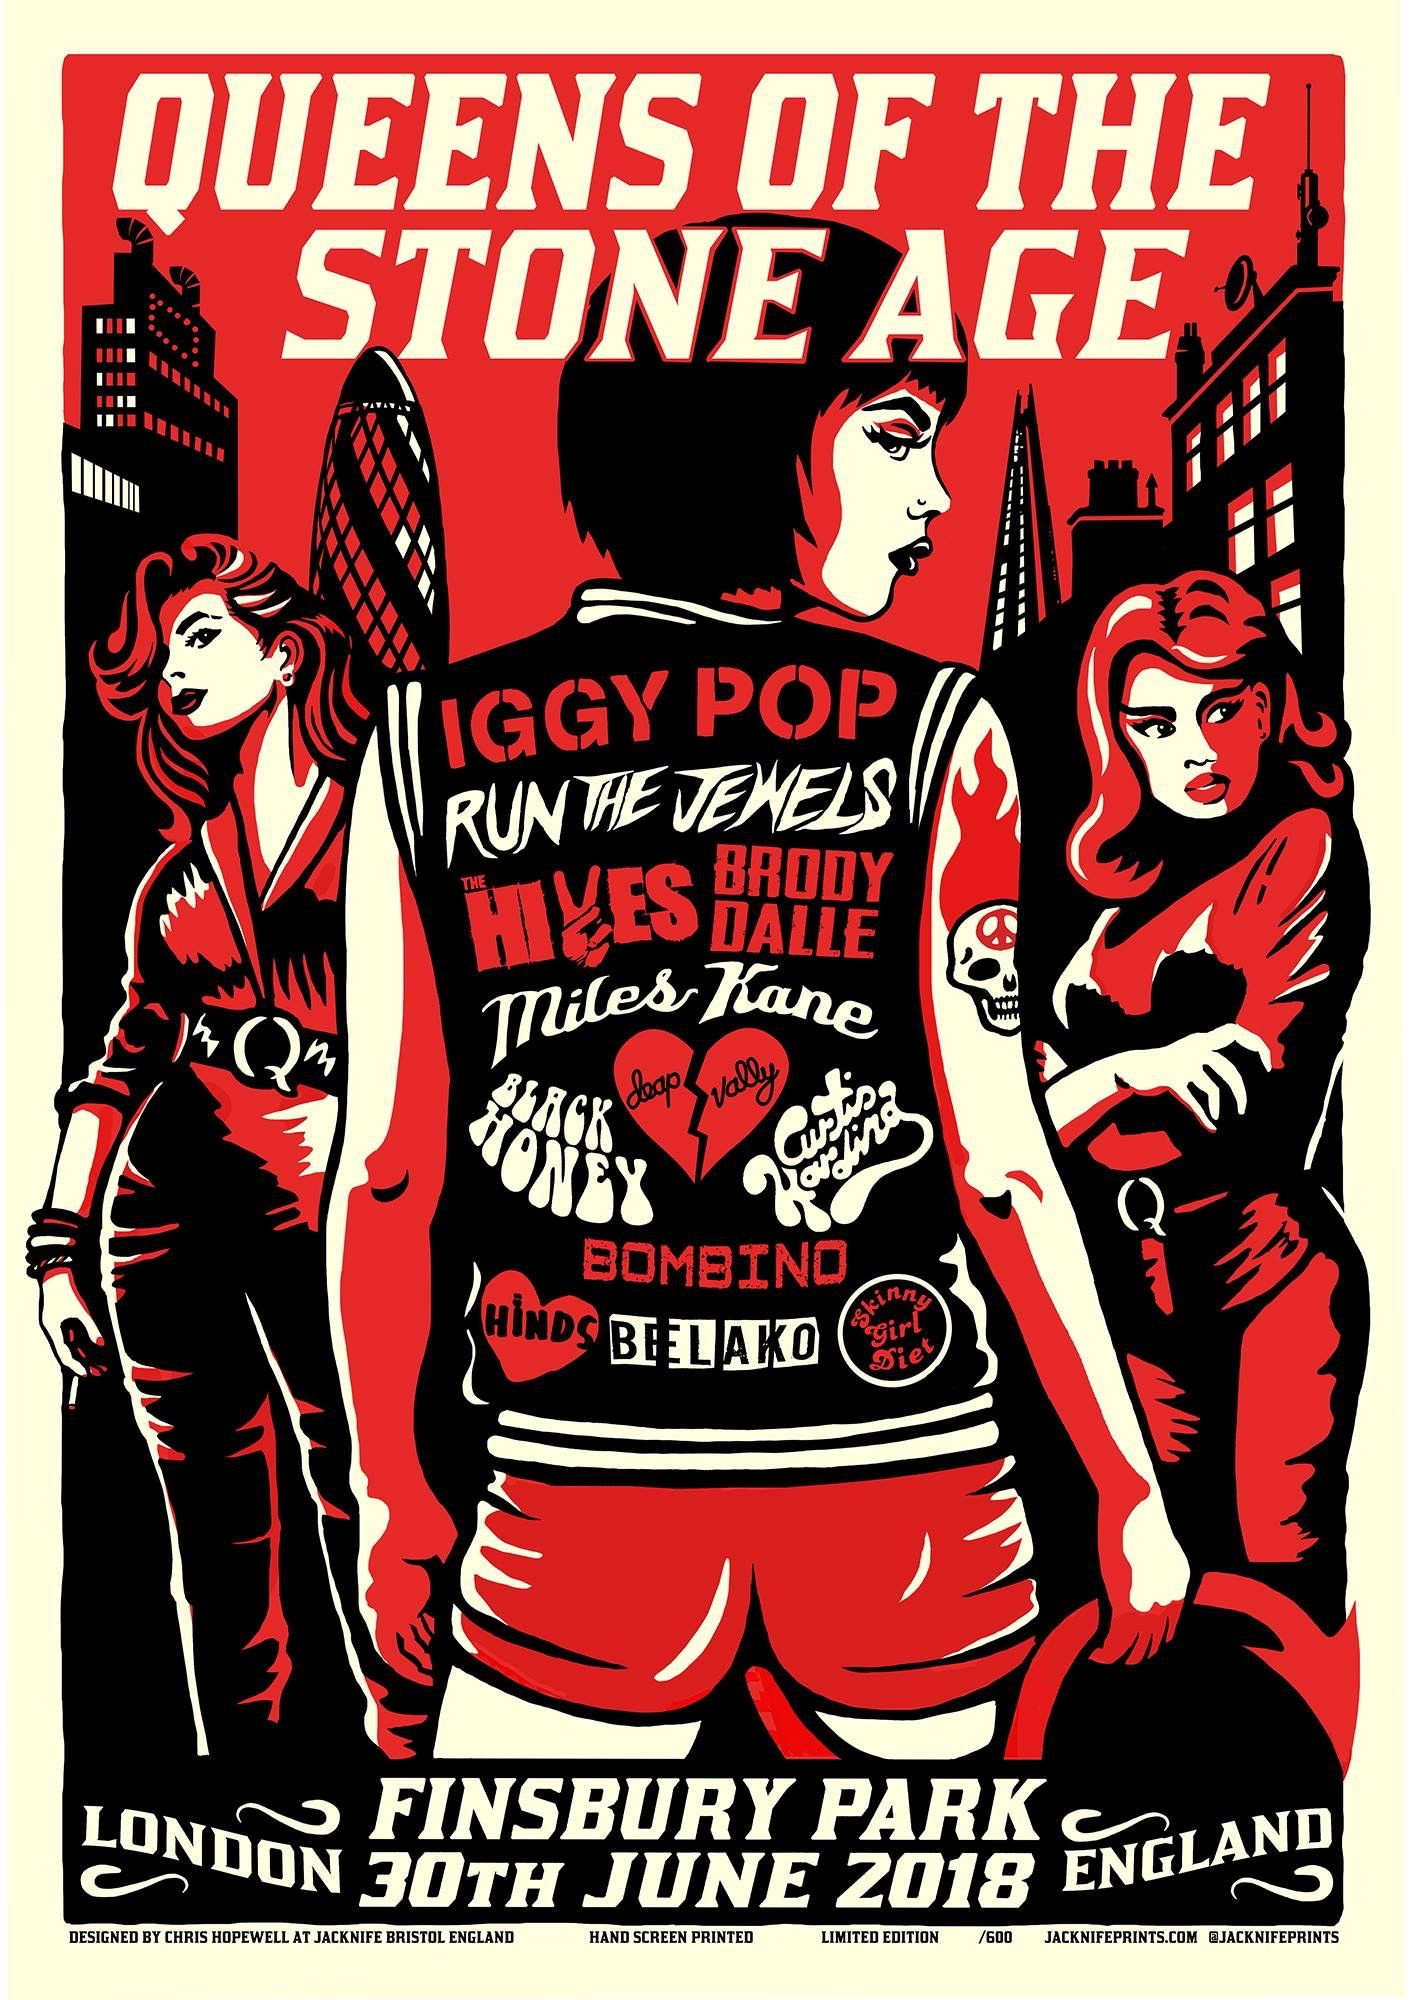 Pin By Kathy Kolodziej On Concert Posters Queens Of The Stone Age Finsbury Park Music Concert Posters